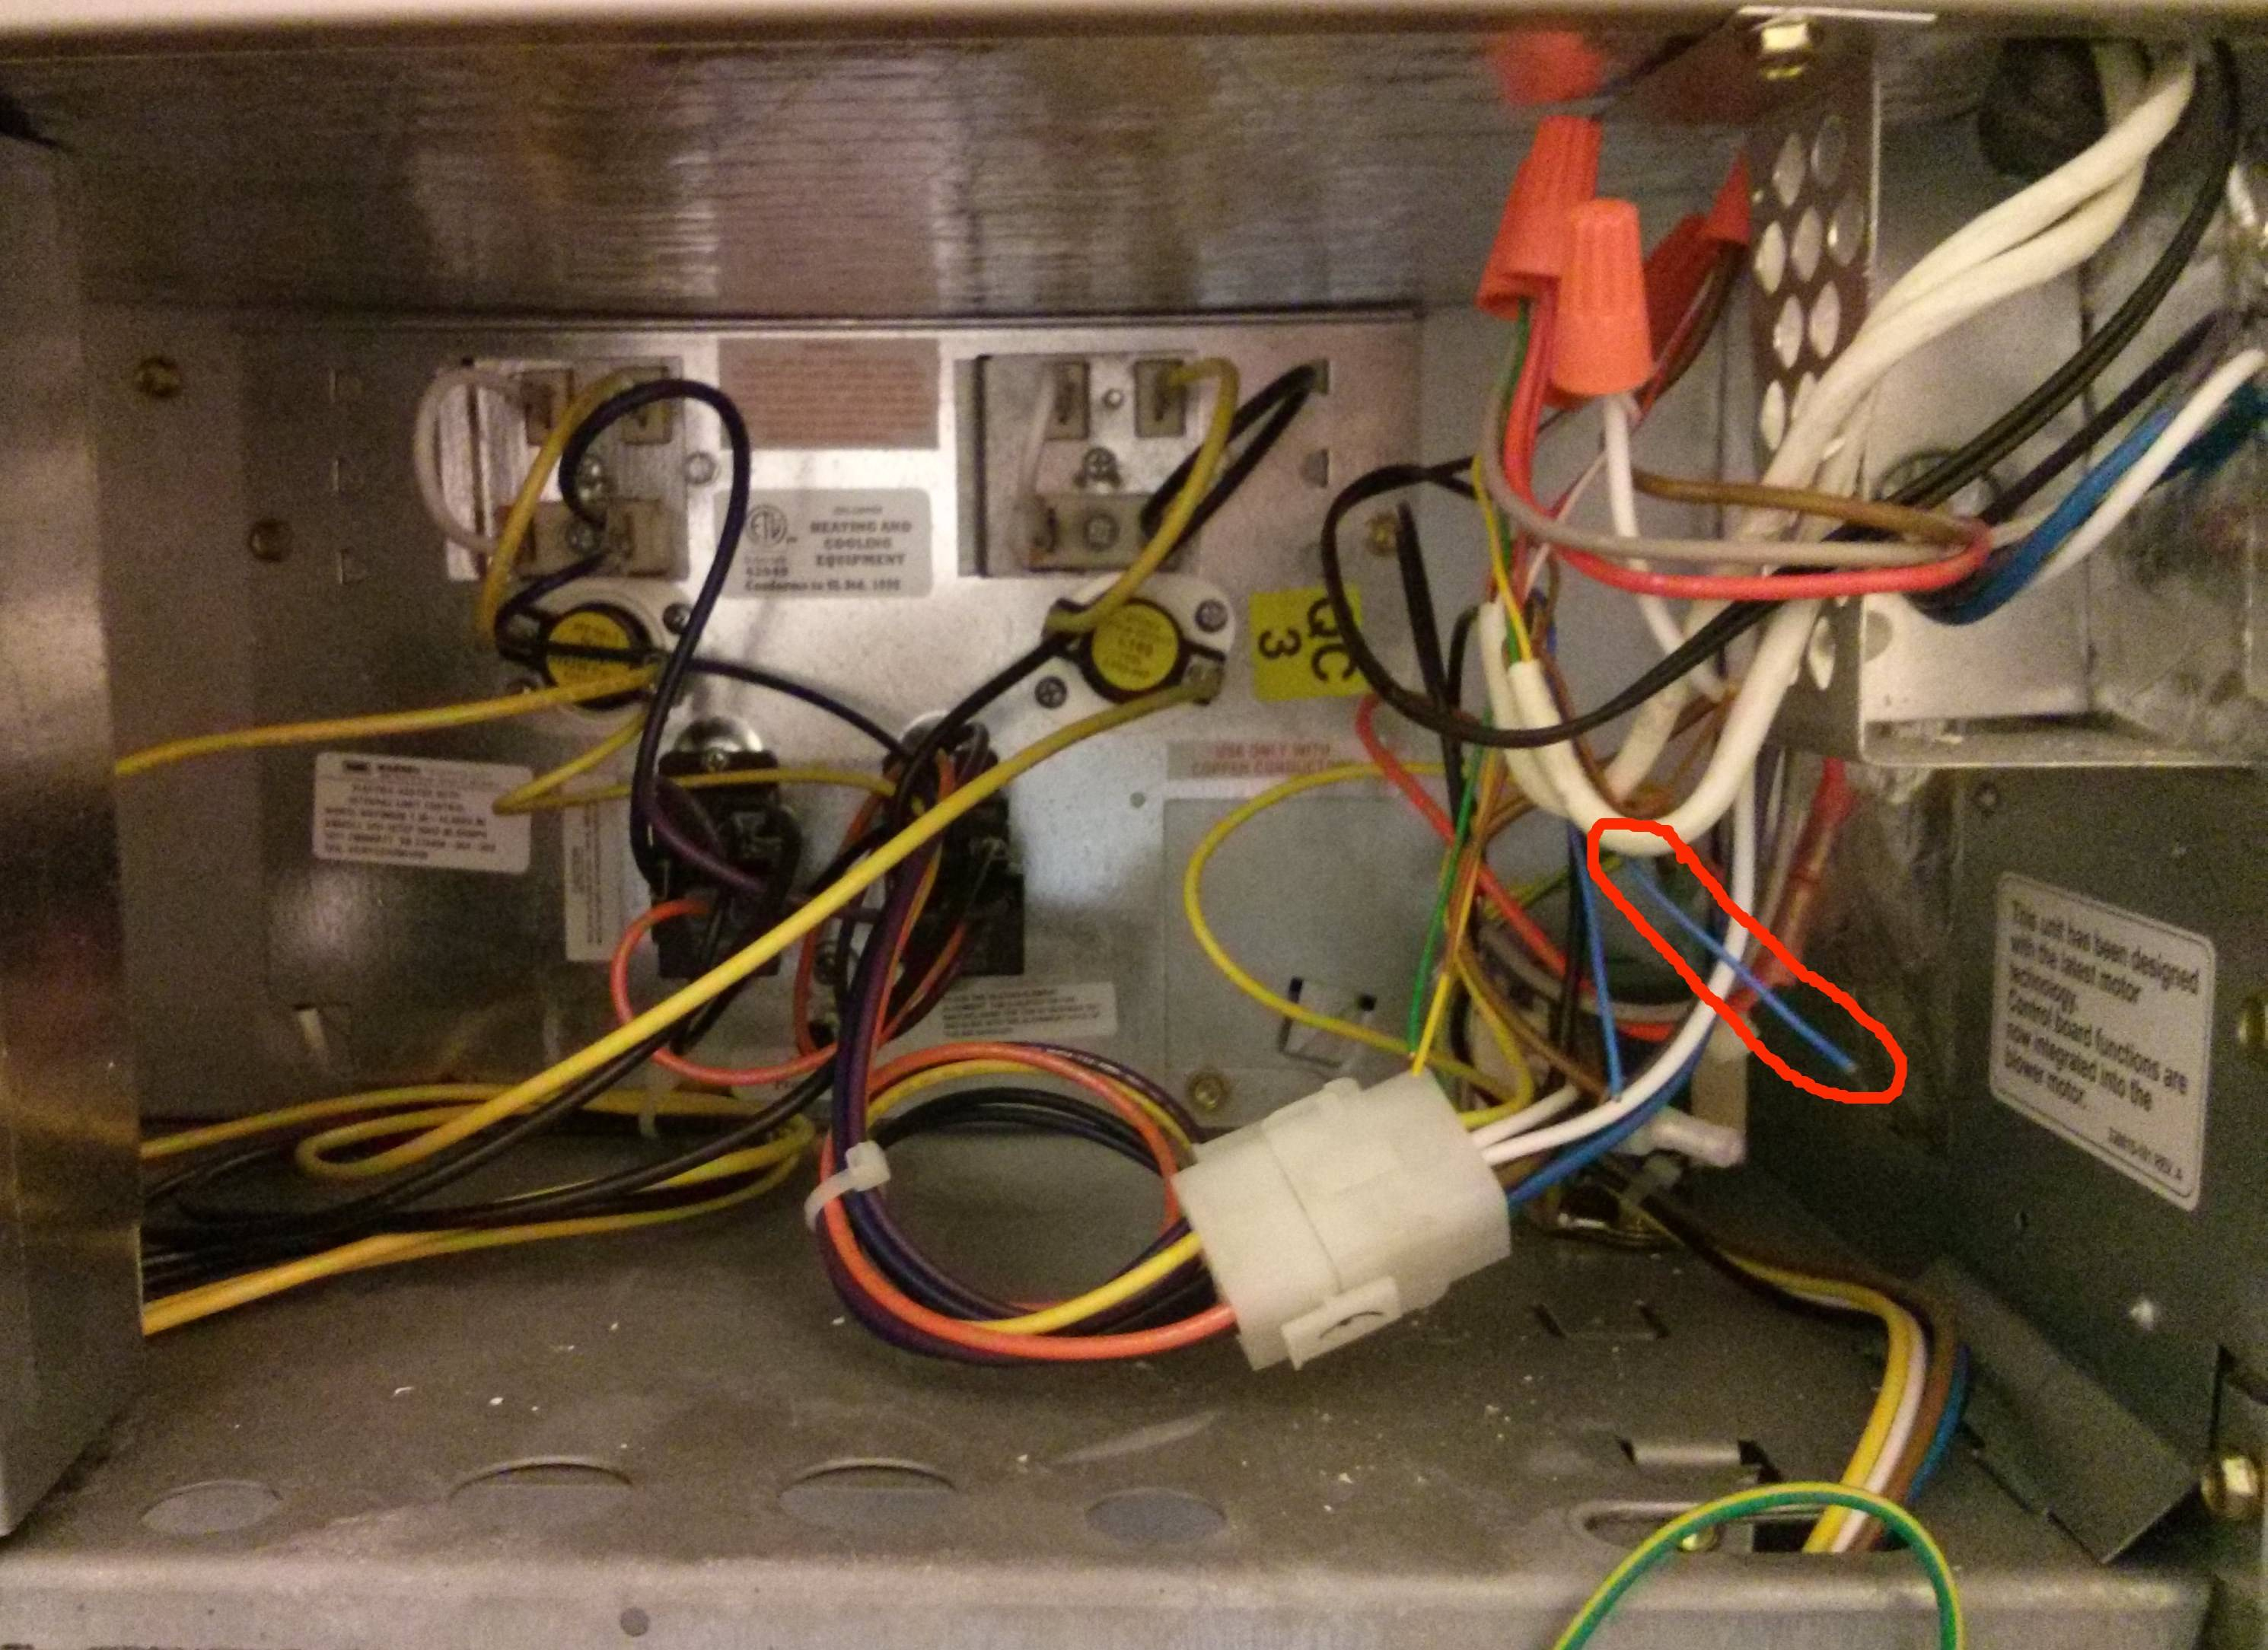 Wiring - How Do I Connect The Common Wire In A Carrier Air Handler - Carrier Air Conditioner Wiring Diagram